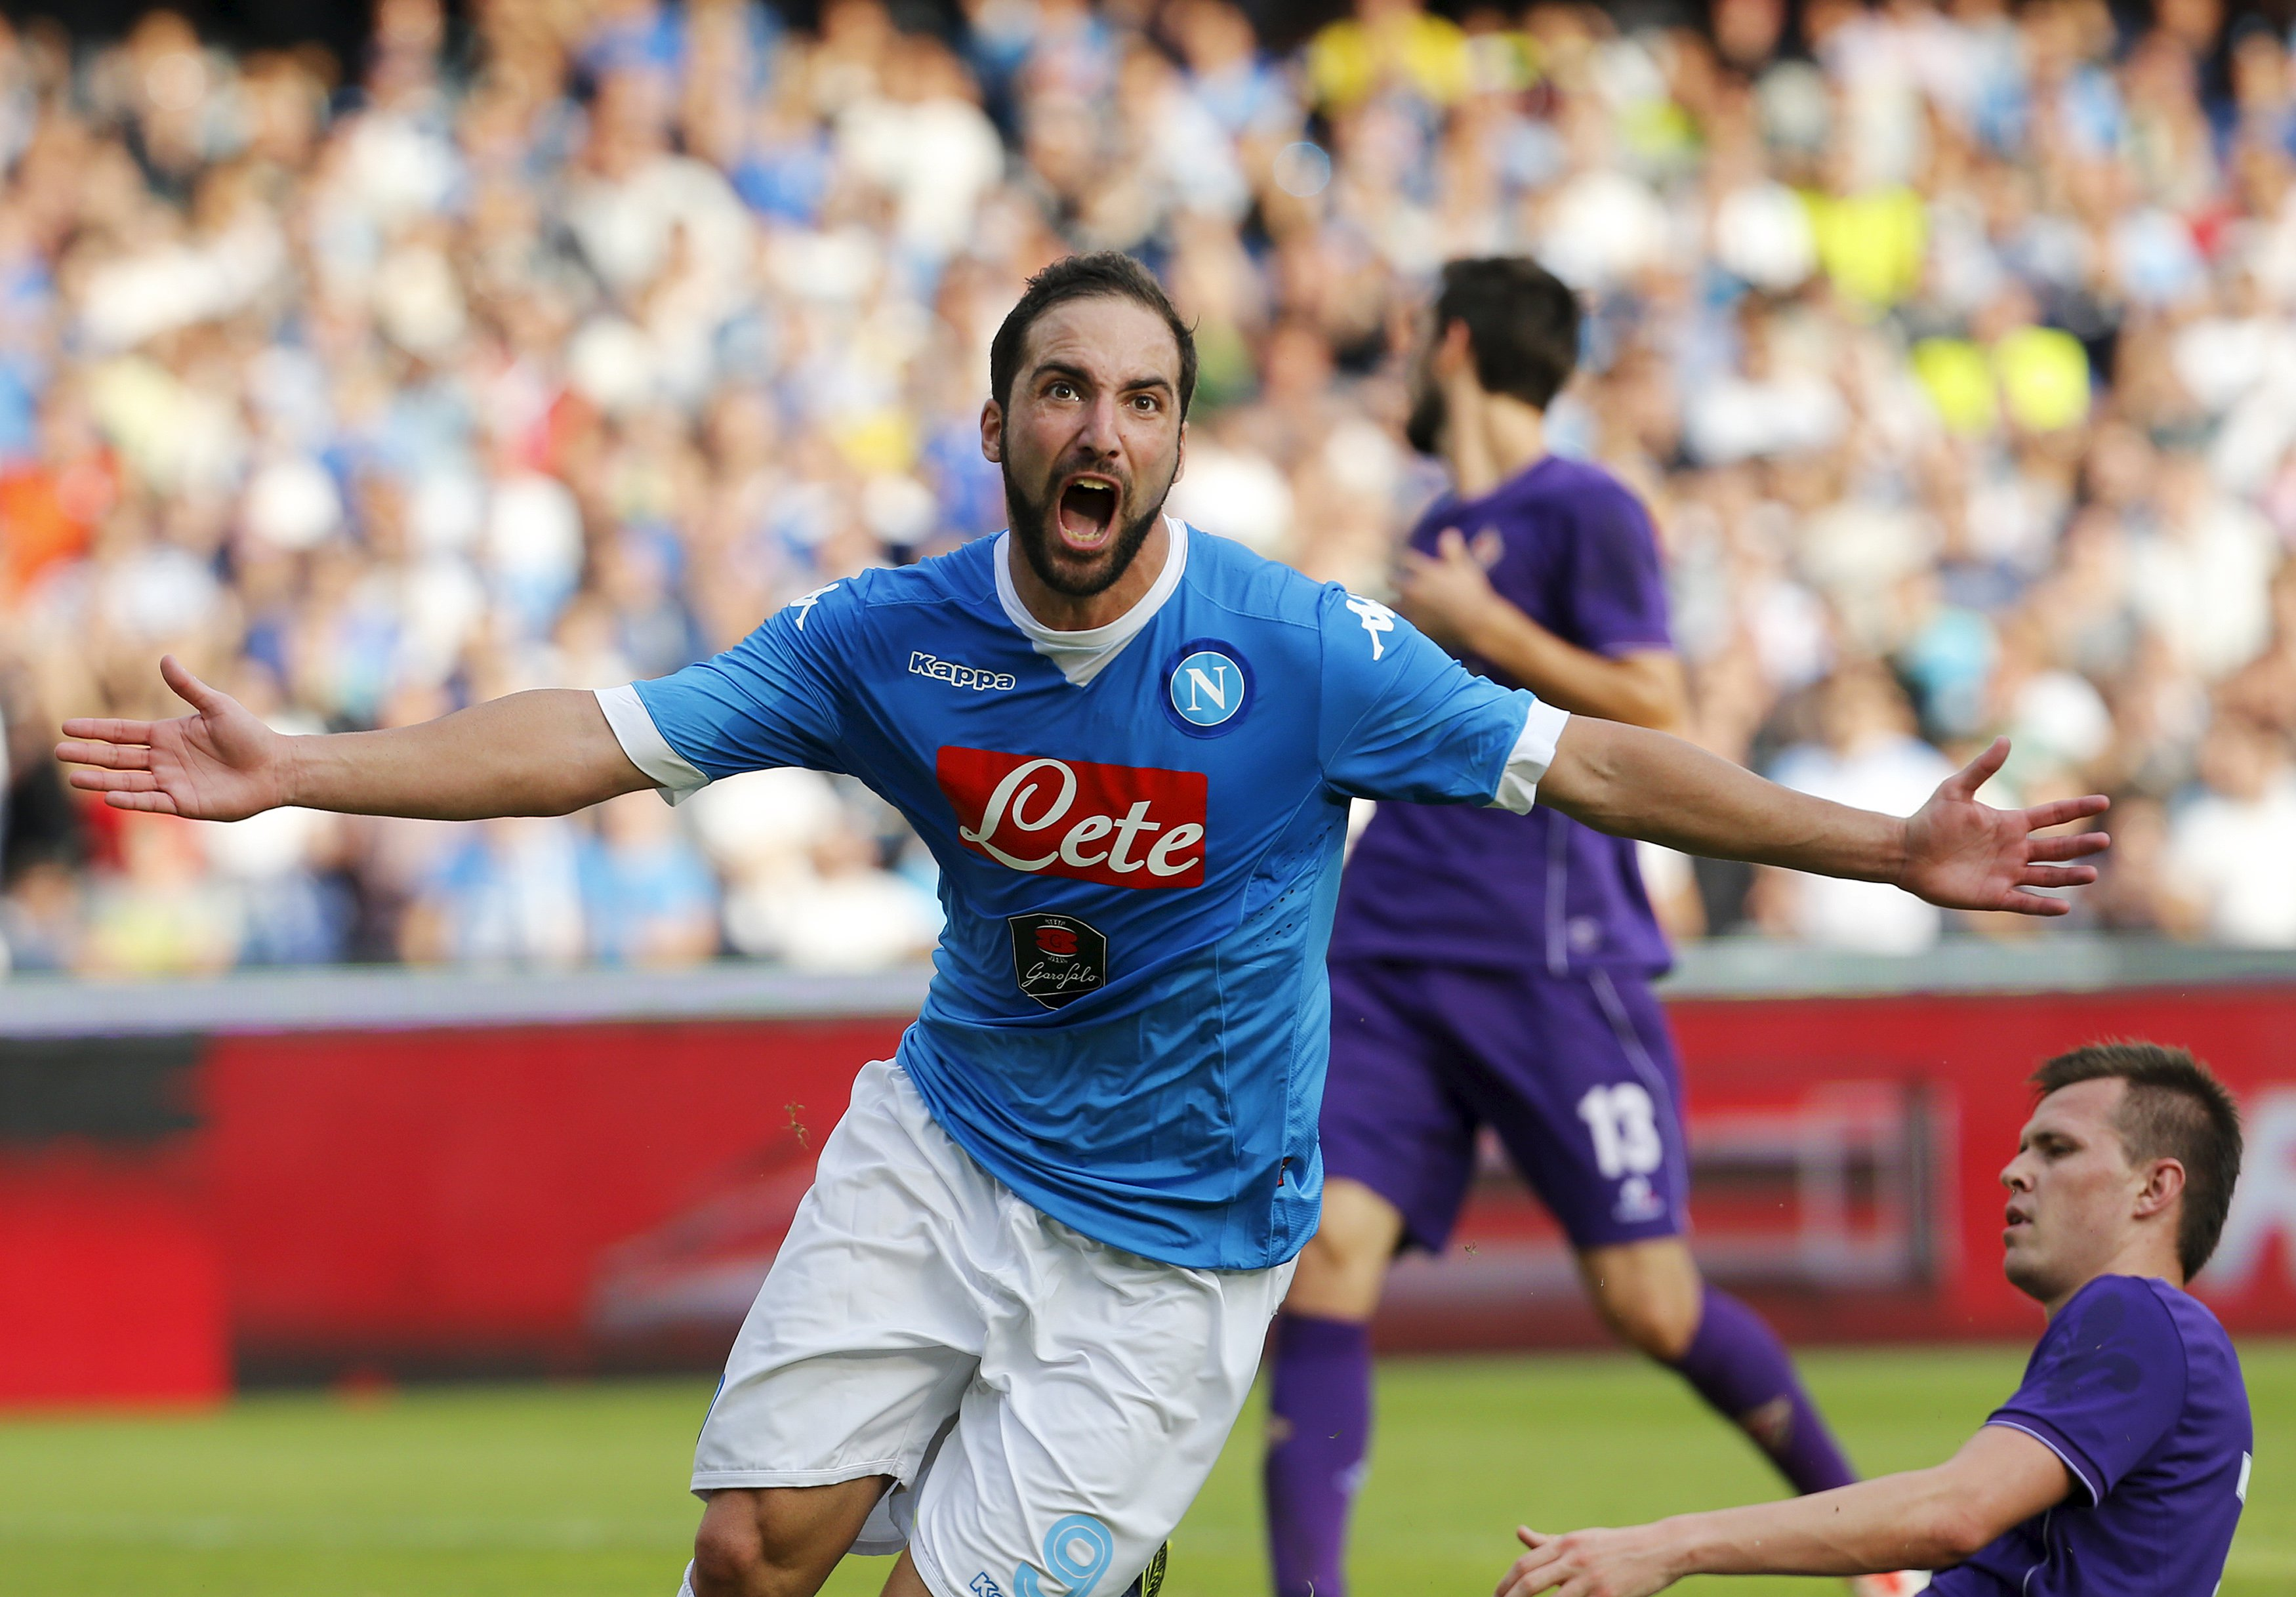 Napoli's Gonzalo Higuain celebrates after scoring against Fiorentina during their Italian Serie A soccer match in Naples